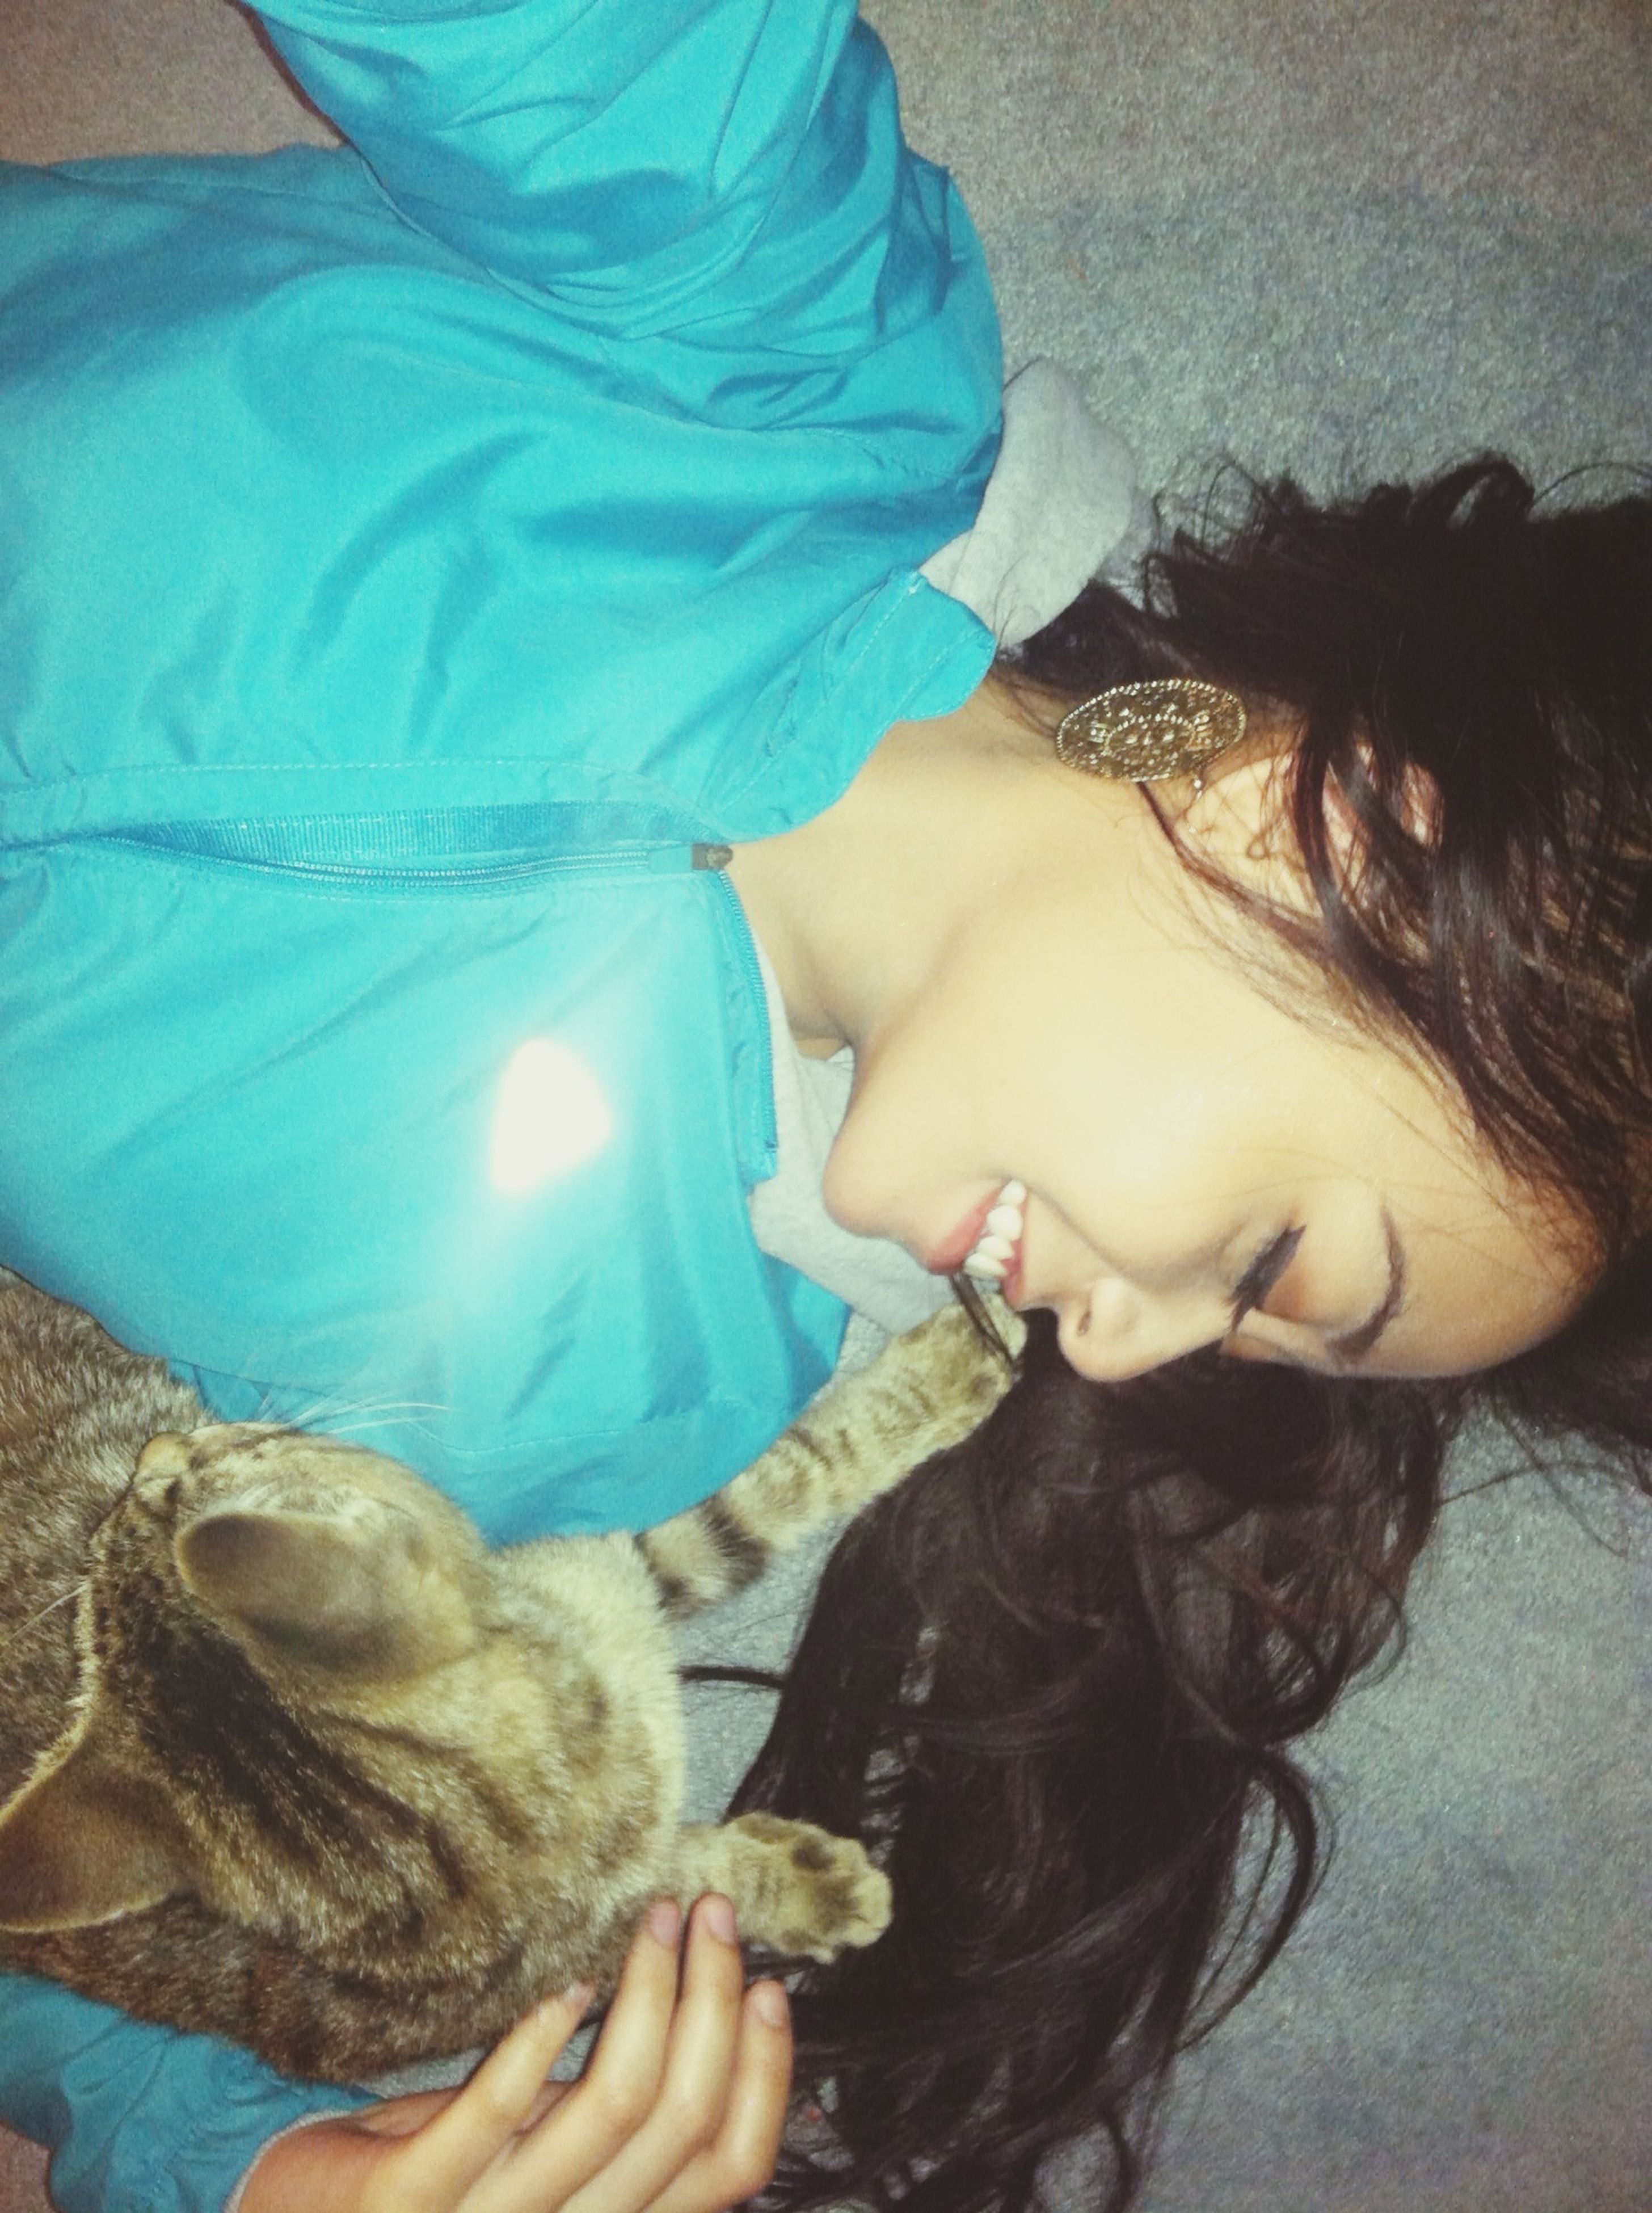 indoors, lifestyles, leisure activity, young women, person, young adult, headshot, high angle view, relaxation, bed, eyes closed, casual clothing, lying down, long hair, close-up, sleeping, childhood